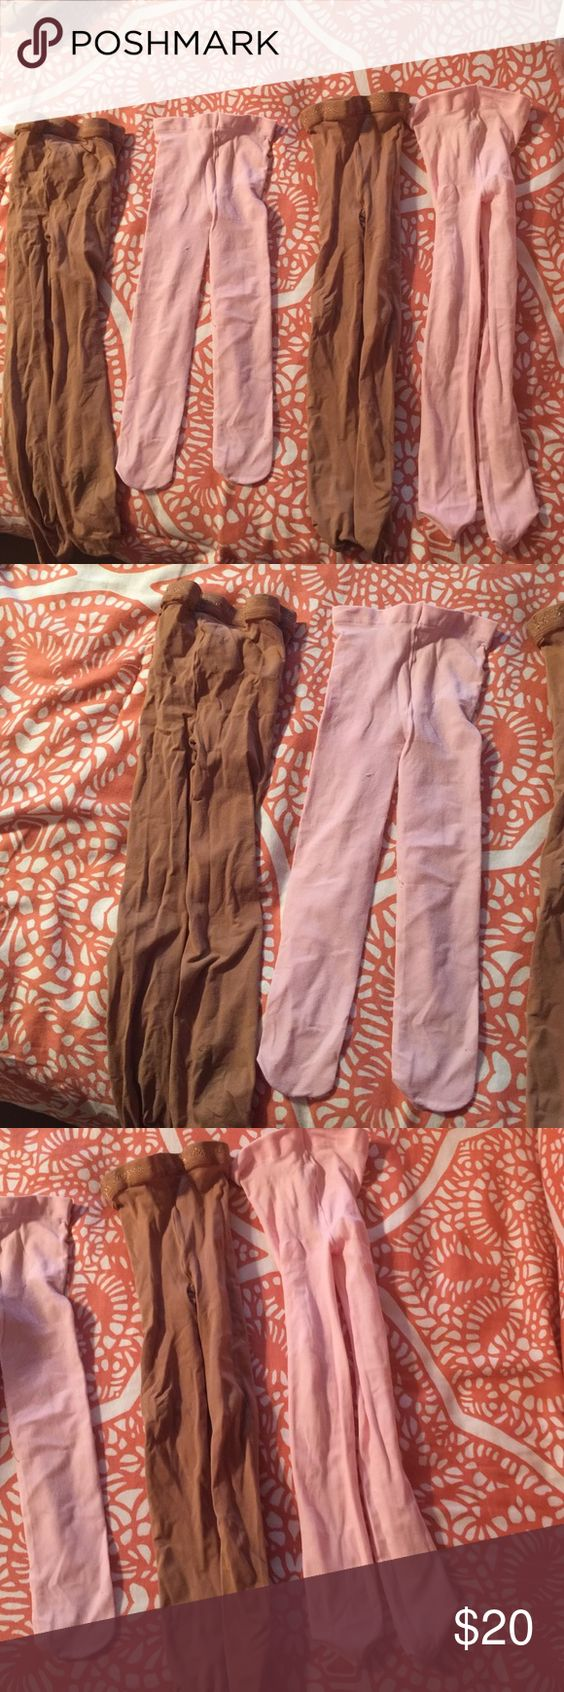 Little girl tights, 4 pairs All 4 pairs are used but in good condition, 2 pink and 2 suntan. The suntan are body wrappers Accessories Hosiery & Socks